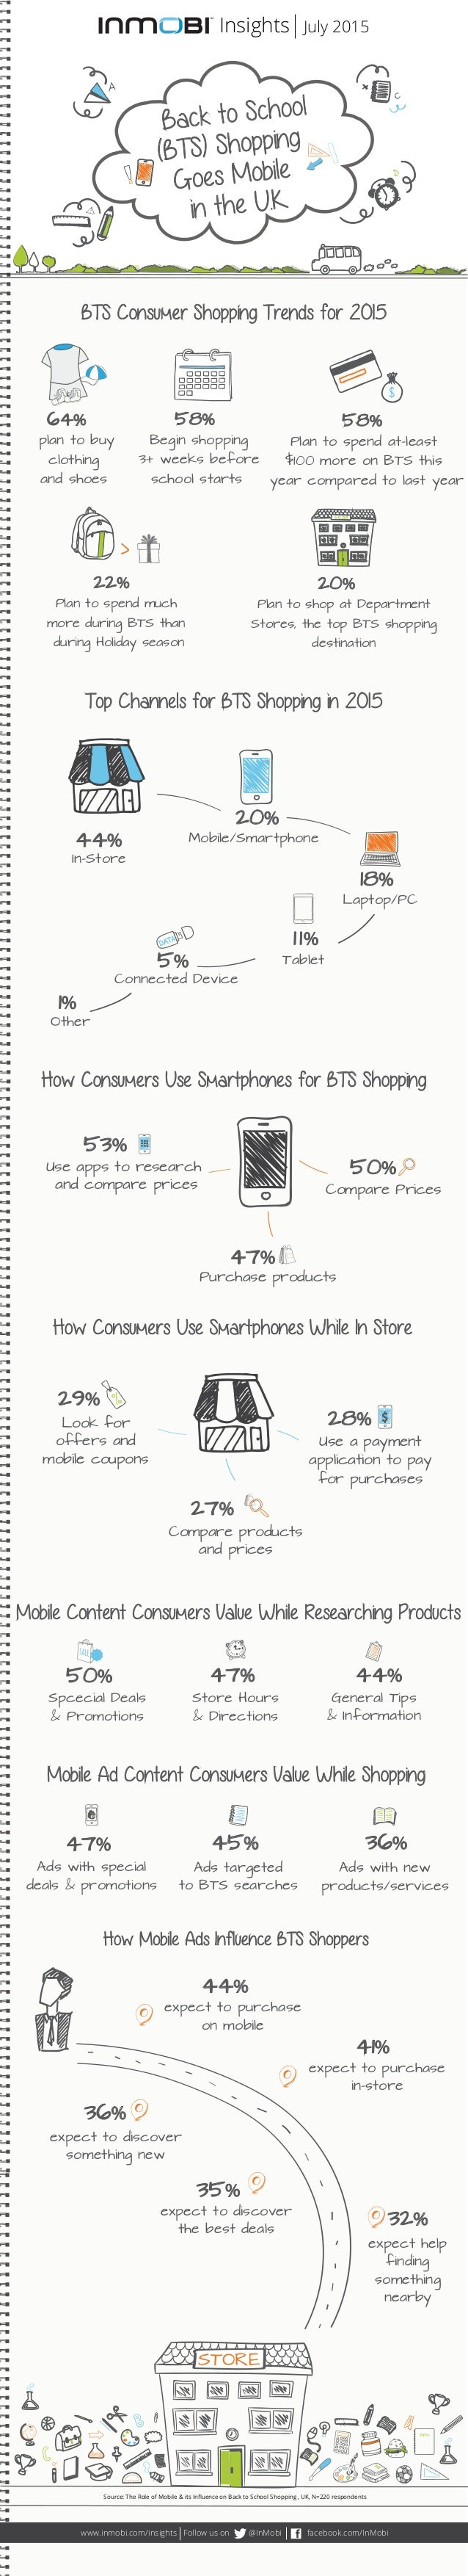 BTS Consumer Shopping Trends for 2015 Top Channels for BTS Shopping in 2015 How Consumers Use Smartphones for BTS Shopping...